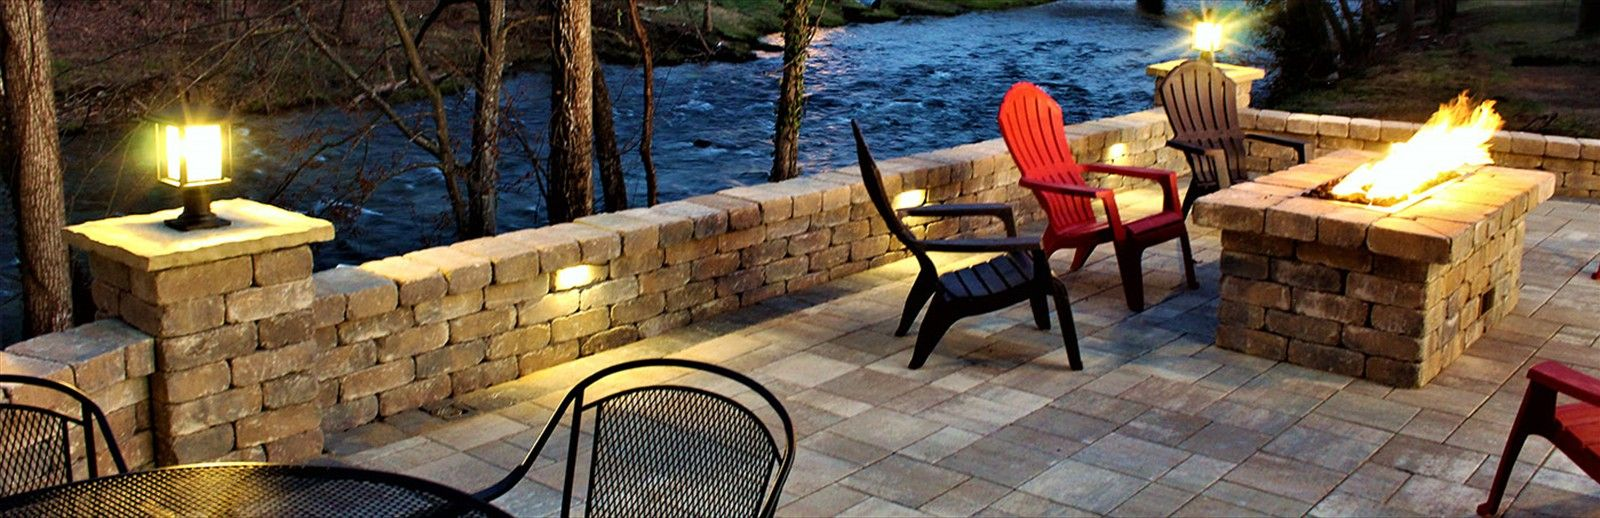 Do you want quality installation for Belgard pavers in